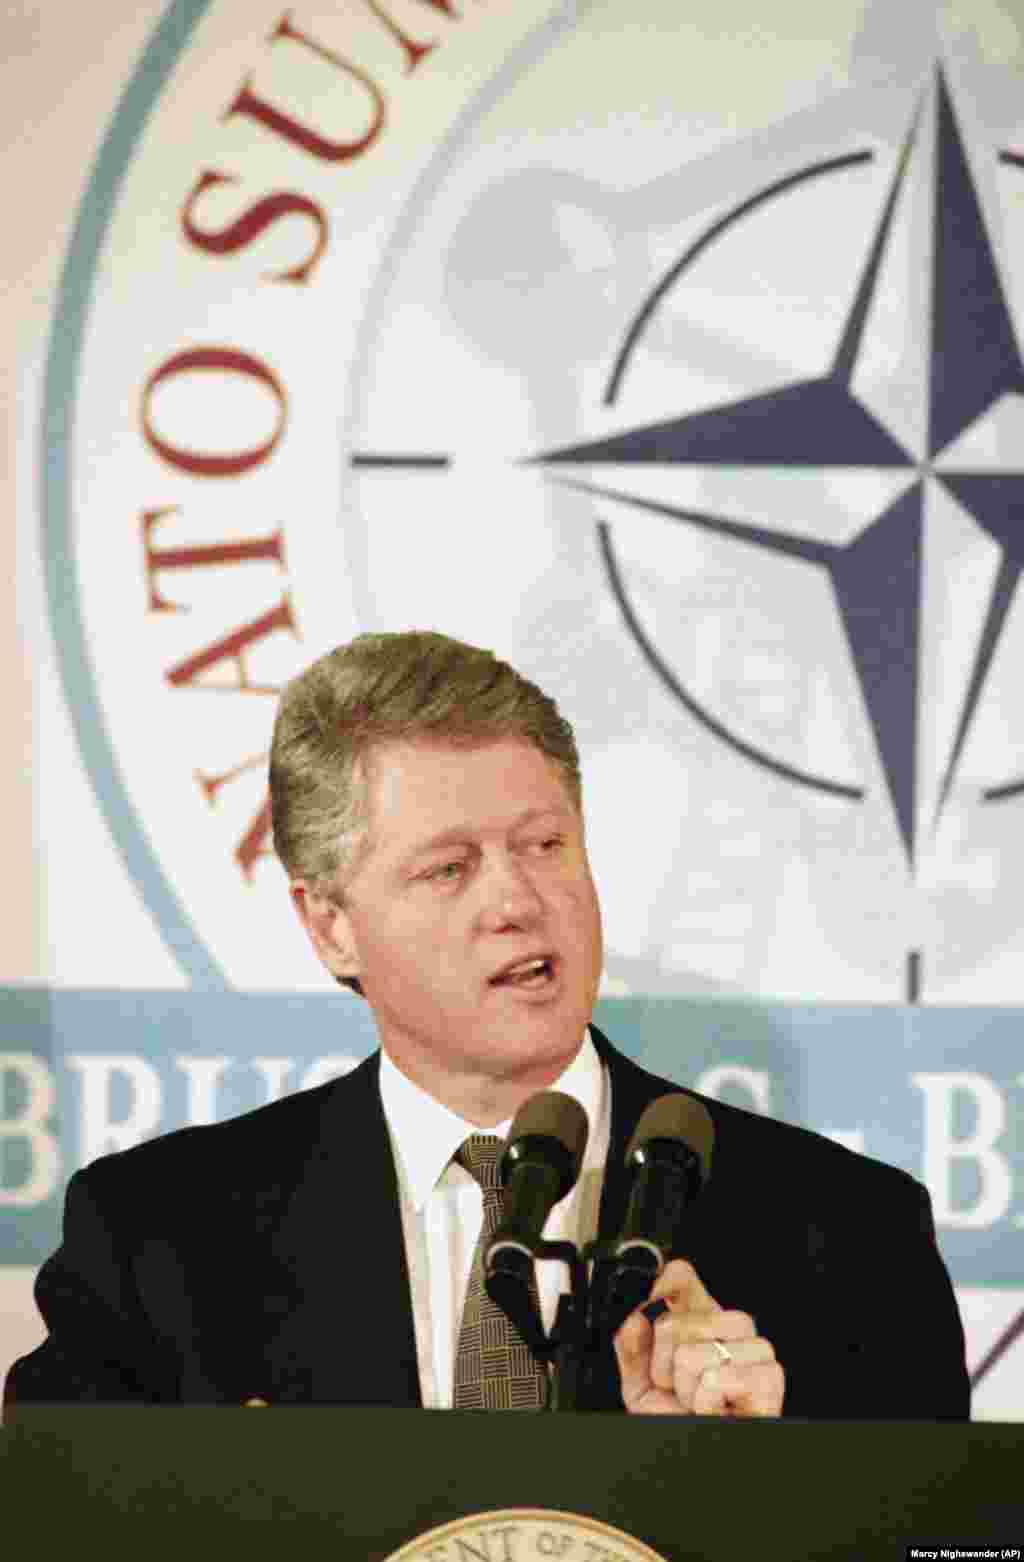 U.S. President Bill Clinton announced a breakthrough in talks between the United States, Russia, and Ukraine at a press conference in Brussels on January 10, 1994. He said Ukraine had agreed to remove all nuclear weapon from its soil, eliminating the world's third-largest nuclear arsenal.